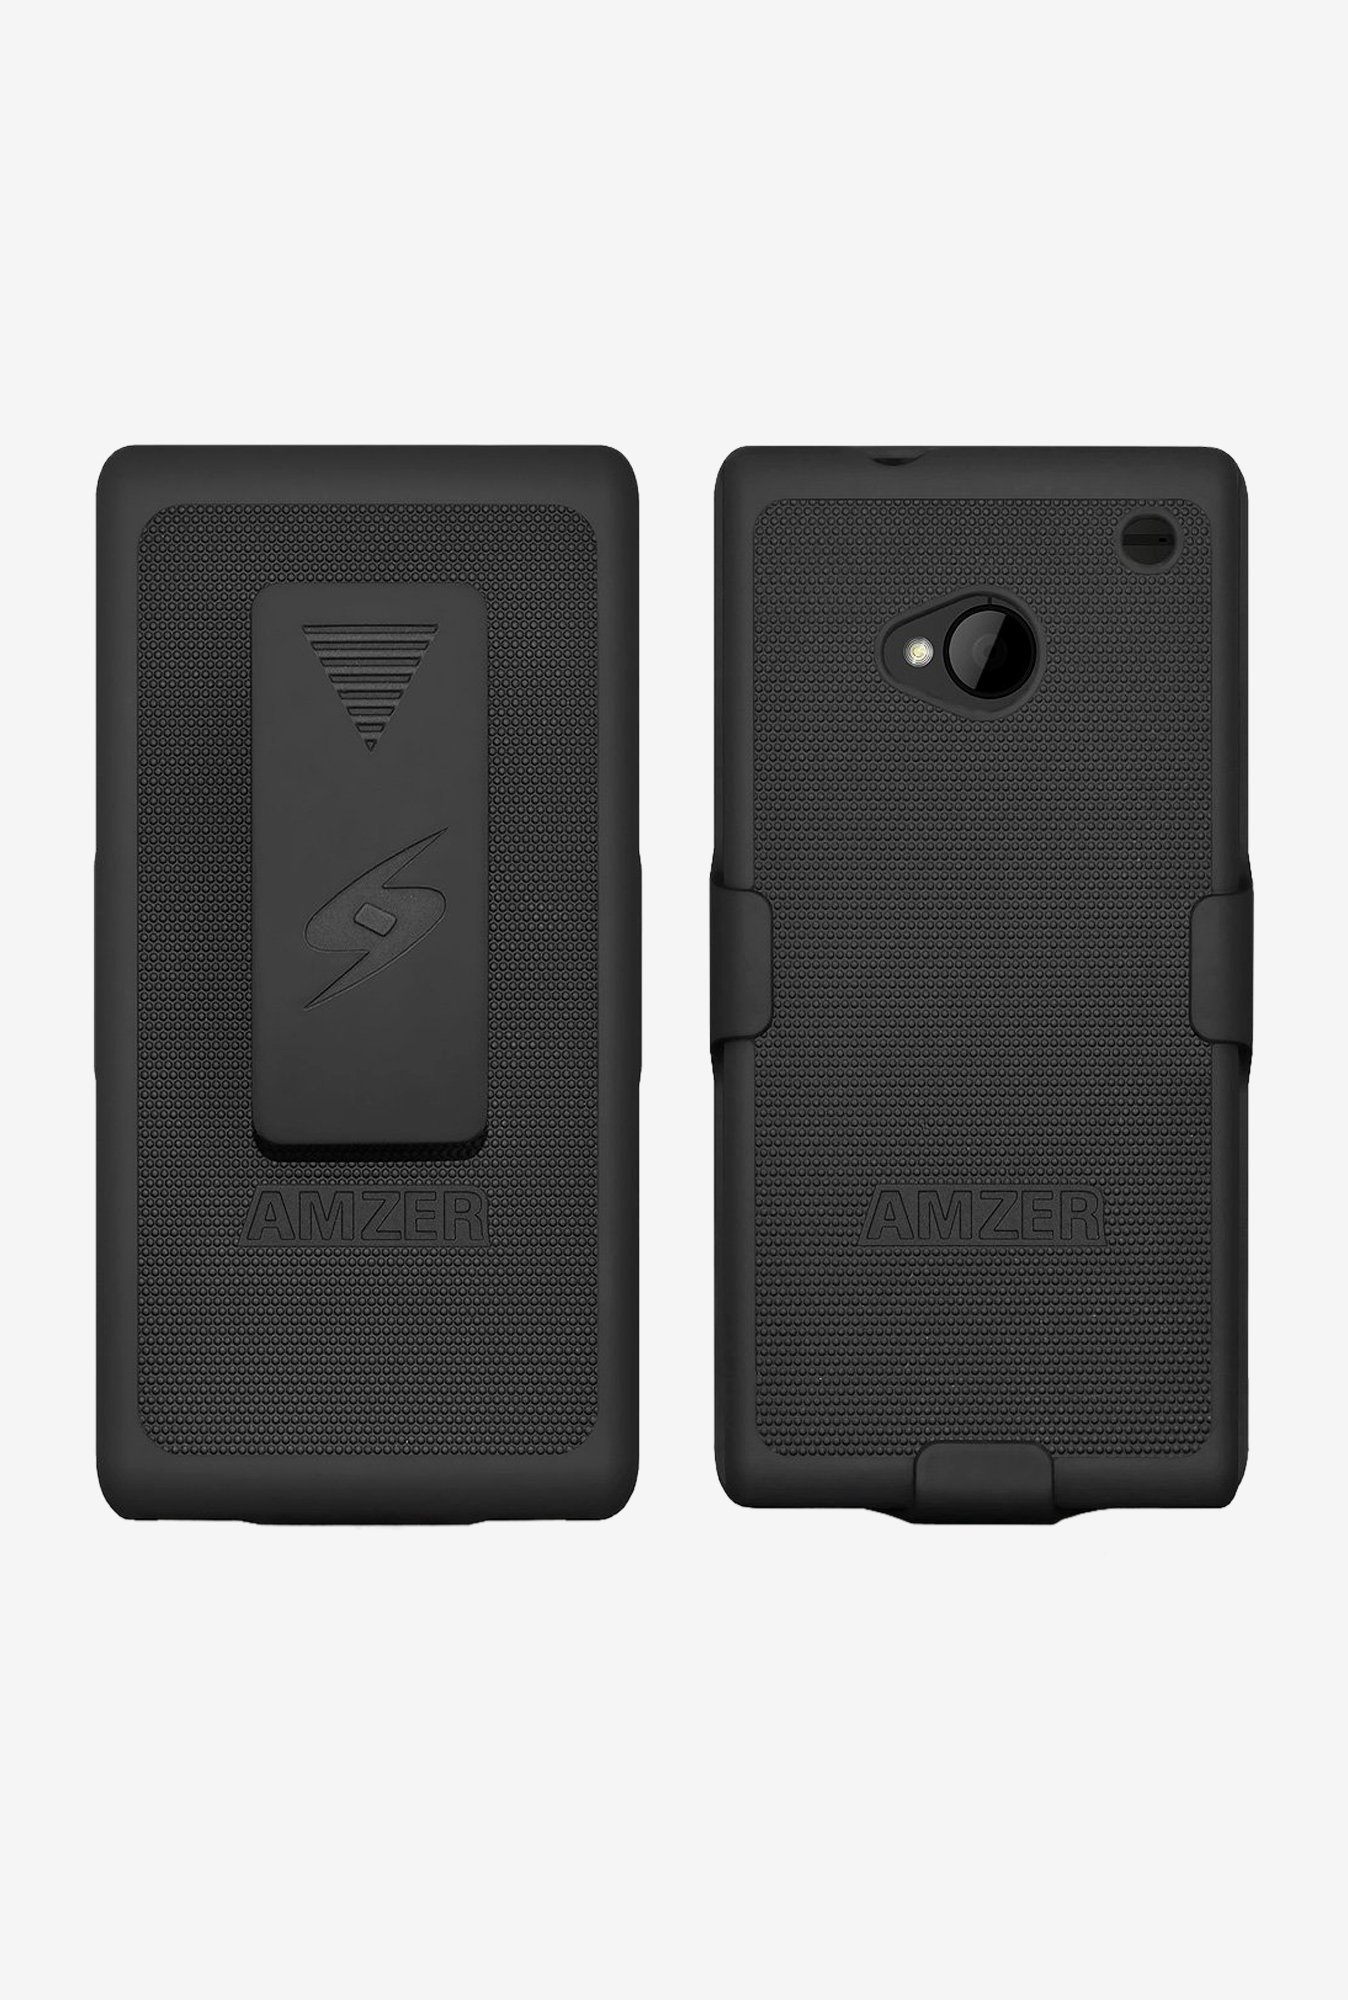 Amzer Shellster Shell Case Black for HTC One M7